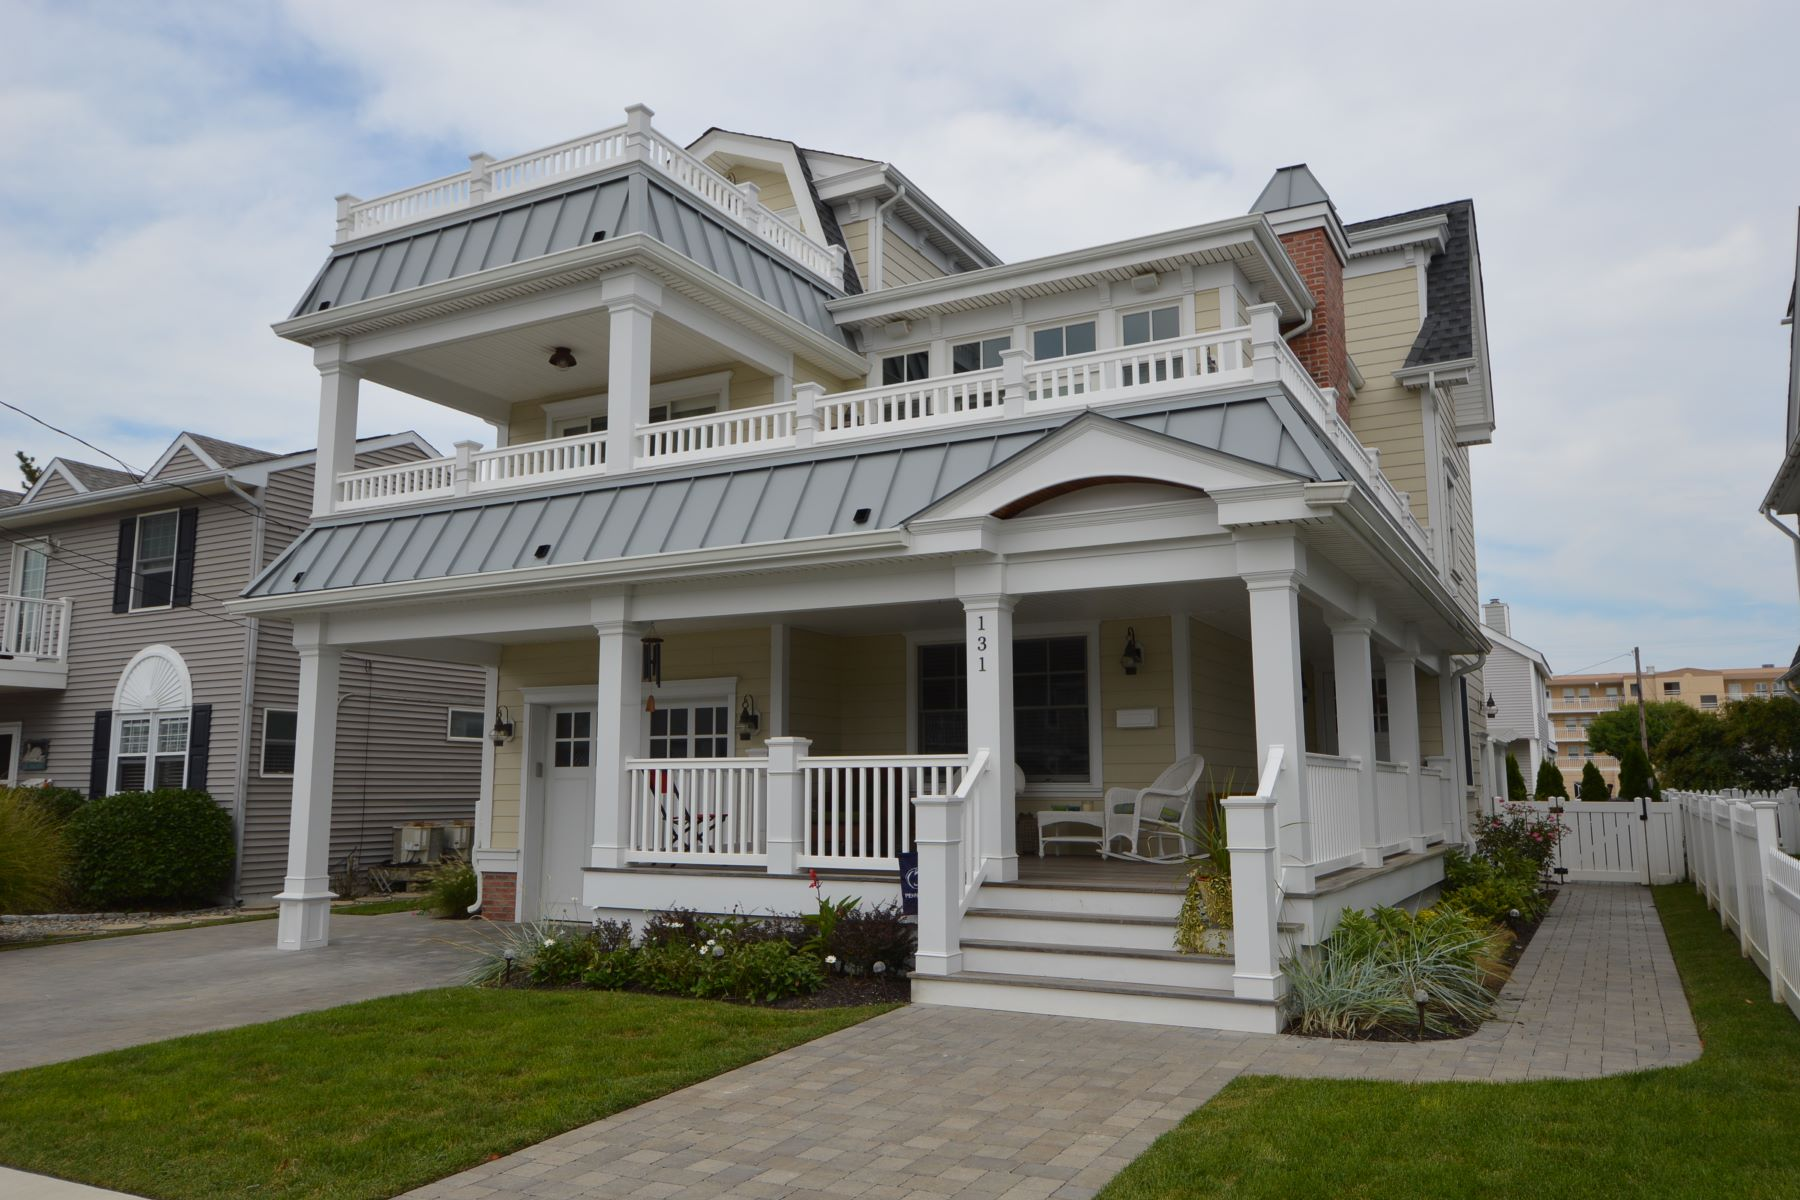 Single Family Home for Rent at Expansive Vacation home 131 9th Street, Avalon, New Jersey 08202 United States